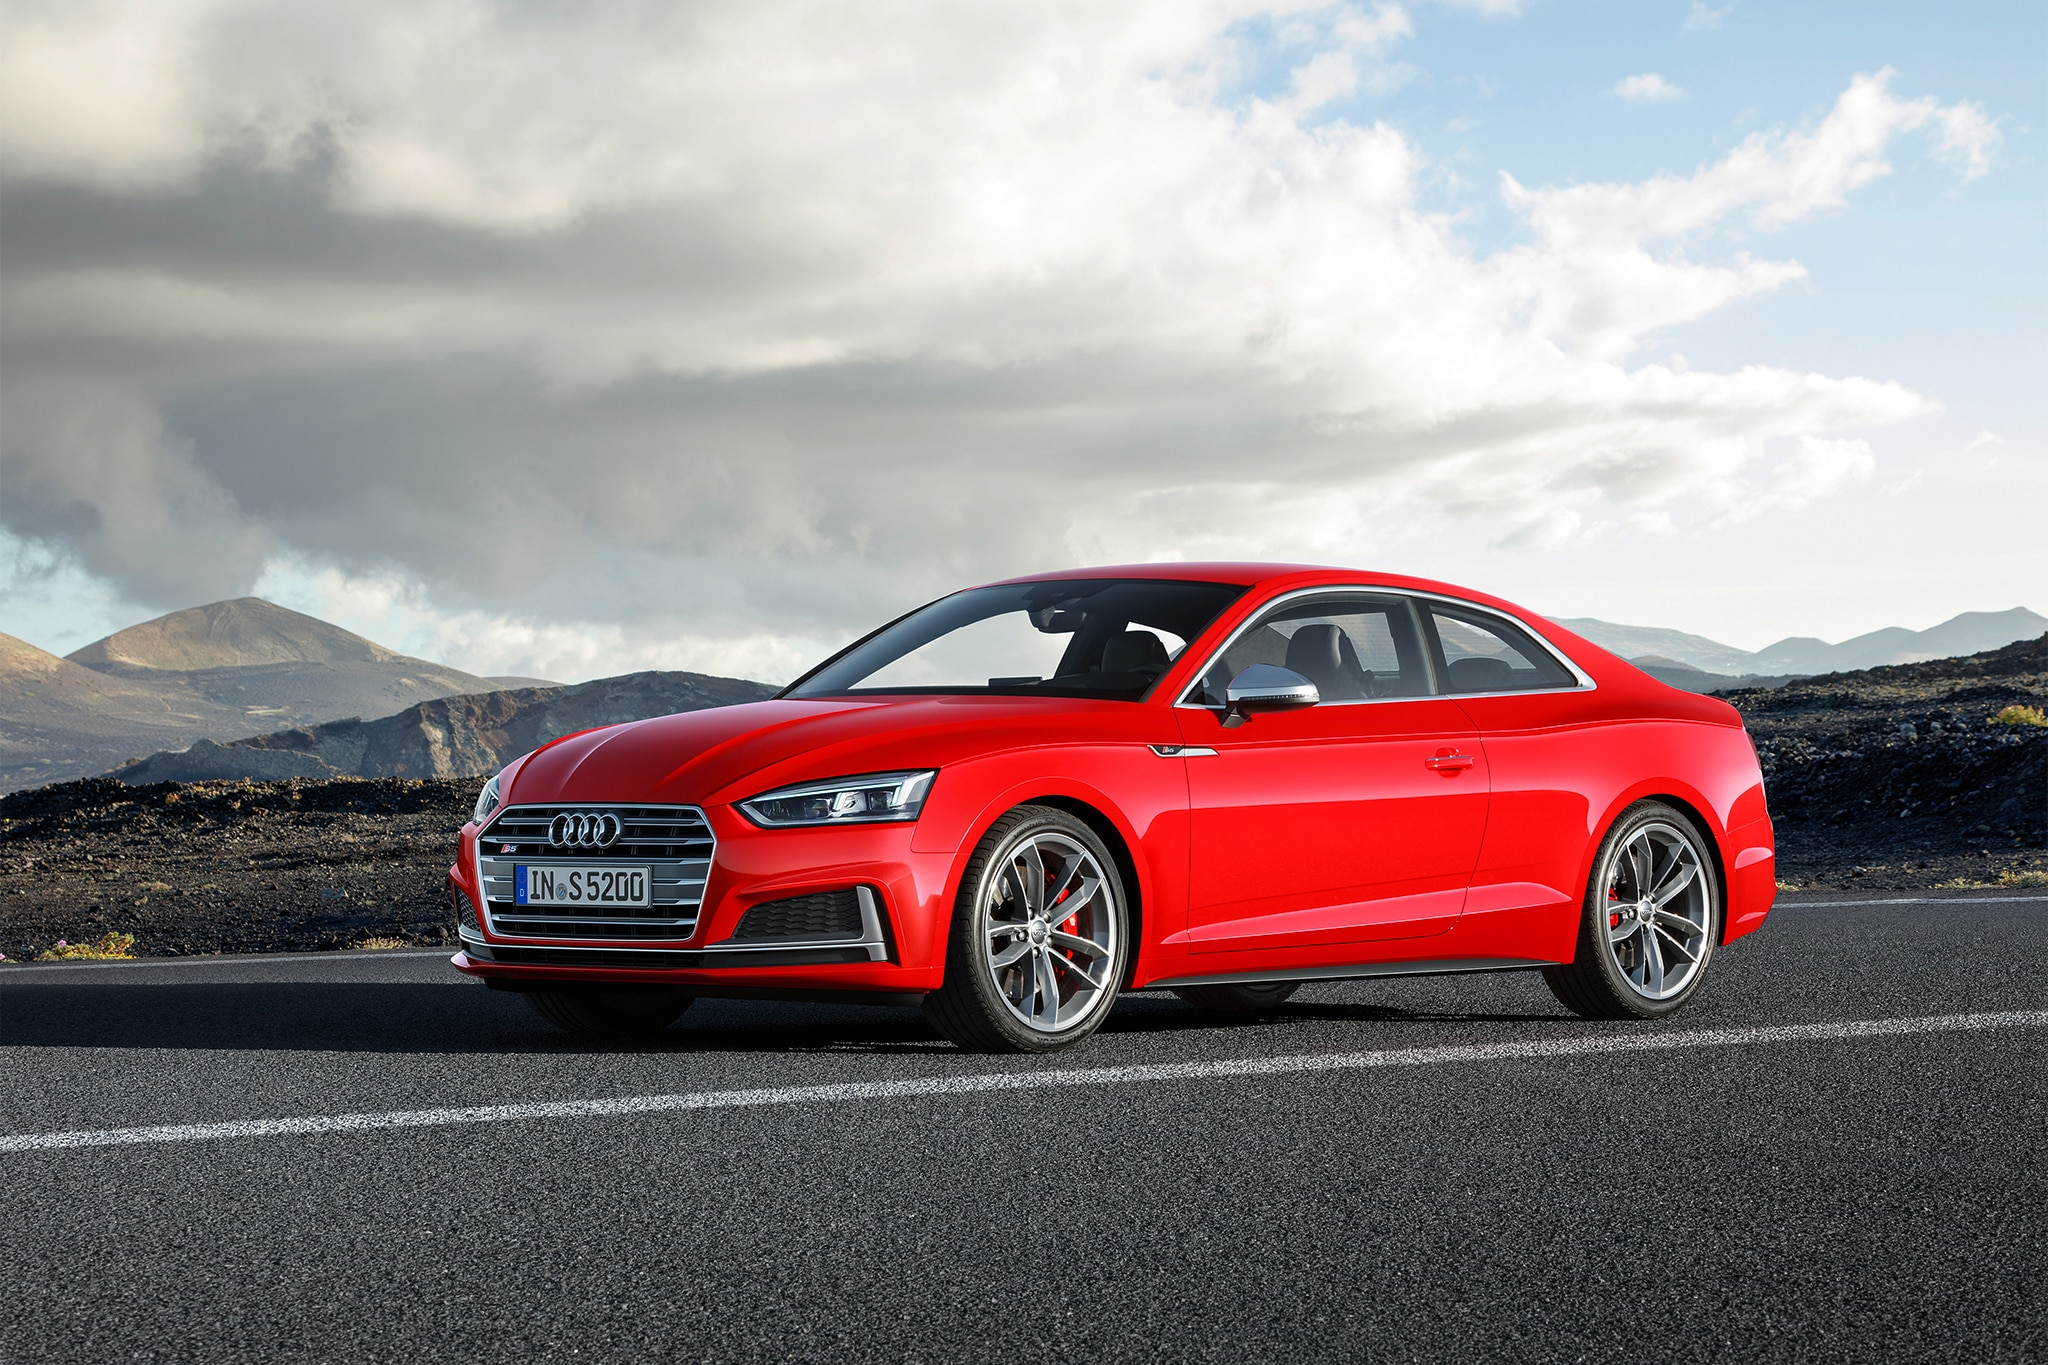 2018 Audi S5 Coupe First Drive Review Automobile Magazine